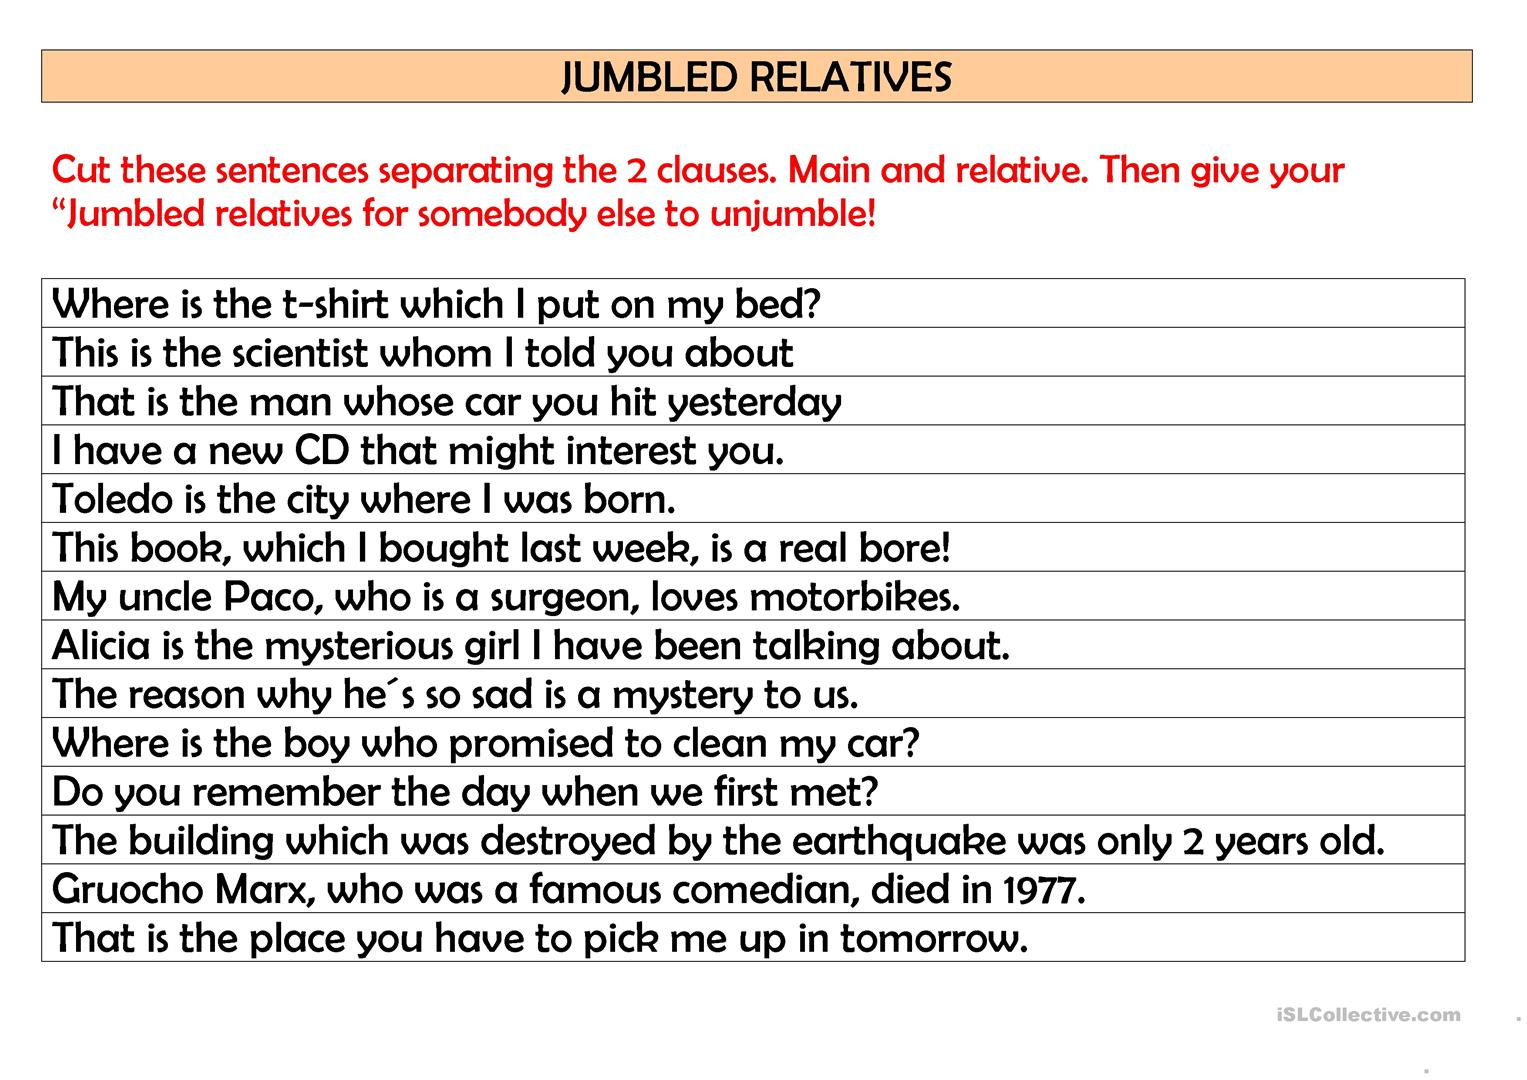 Jumbled Relatives Worksheet